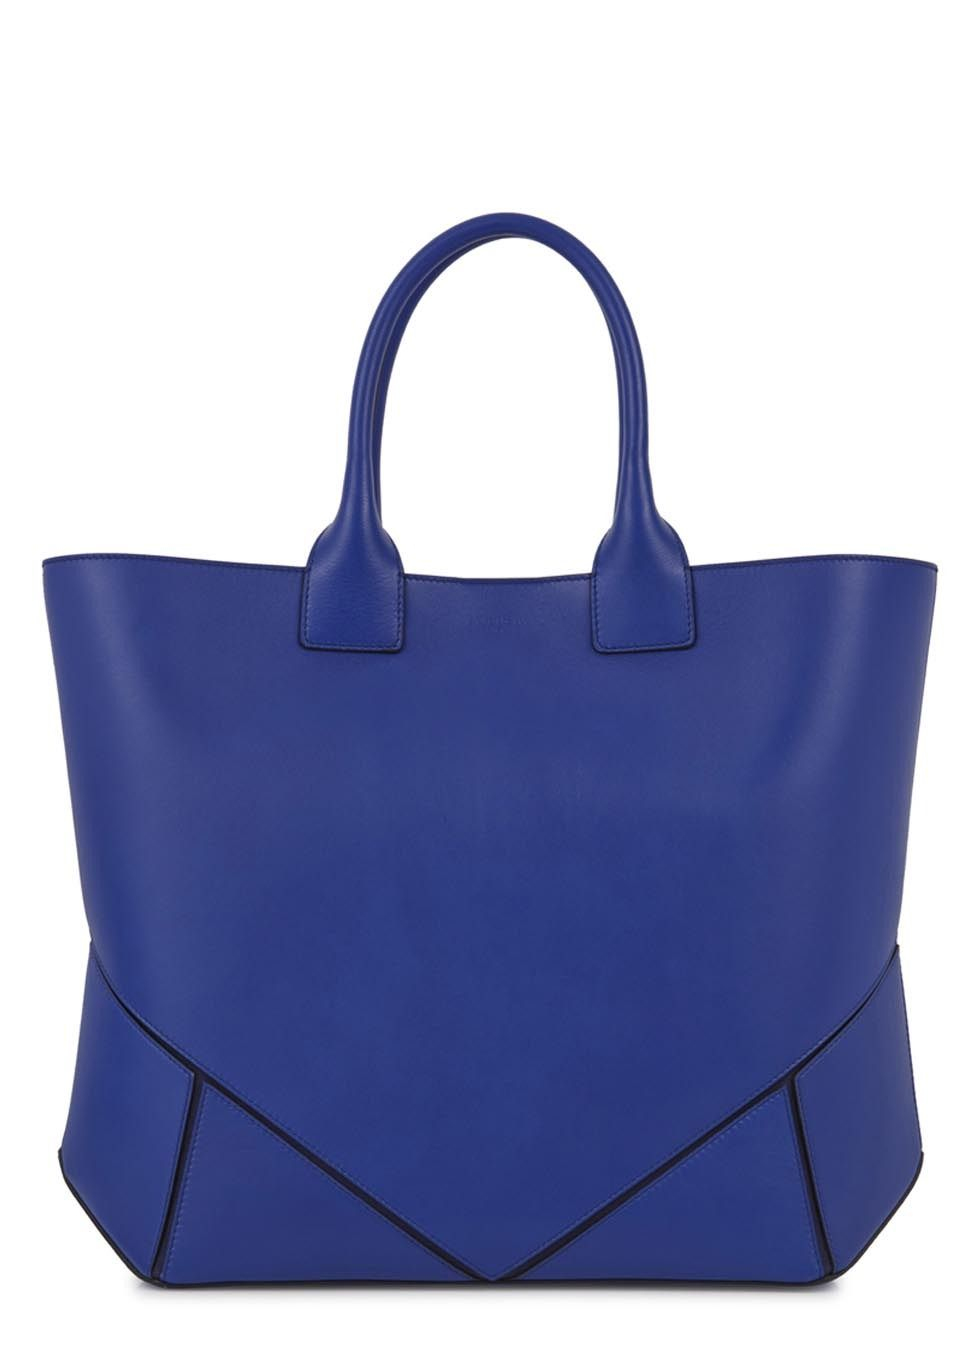 Bright Blue Leather Handbag | Luggage And Suitcases